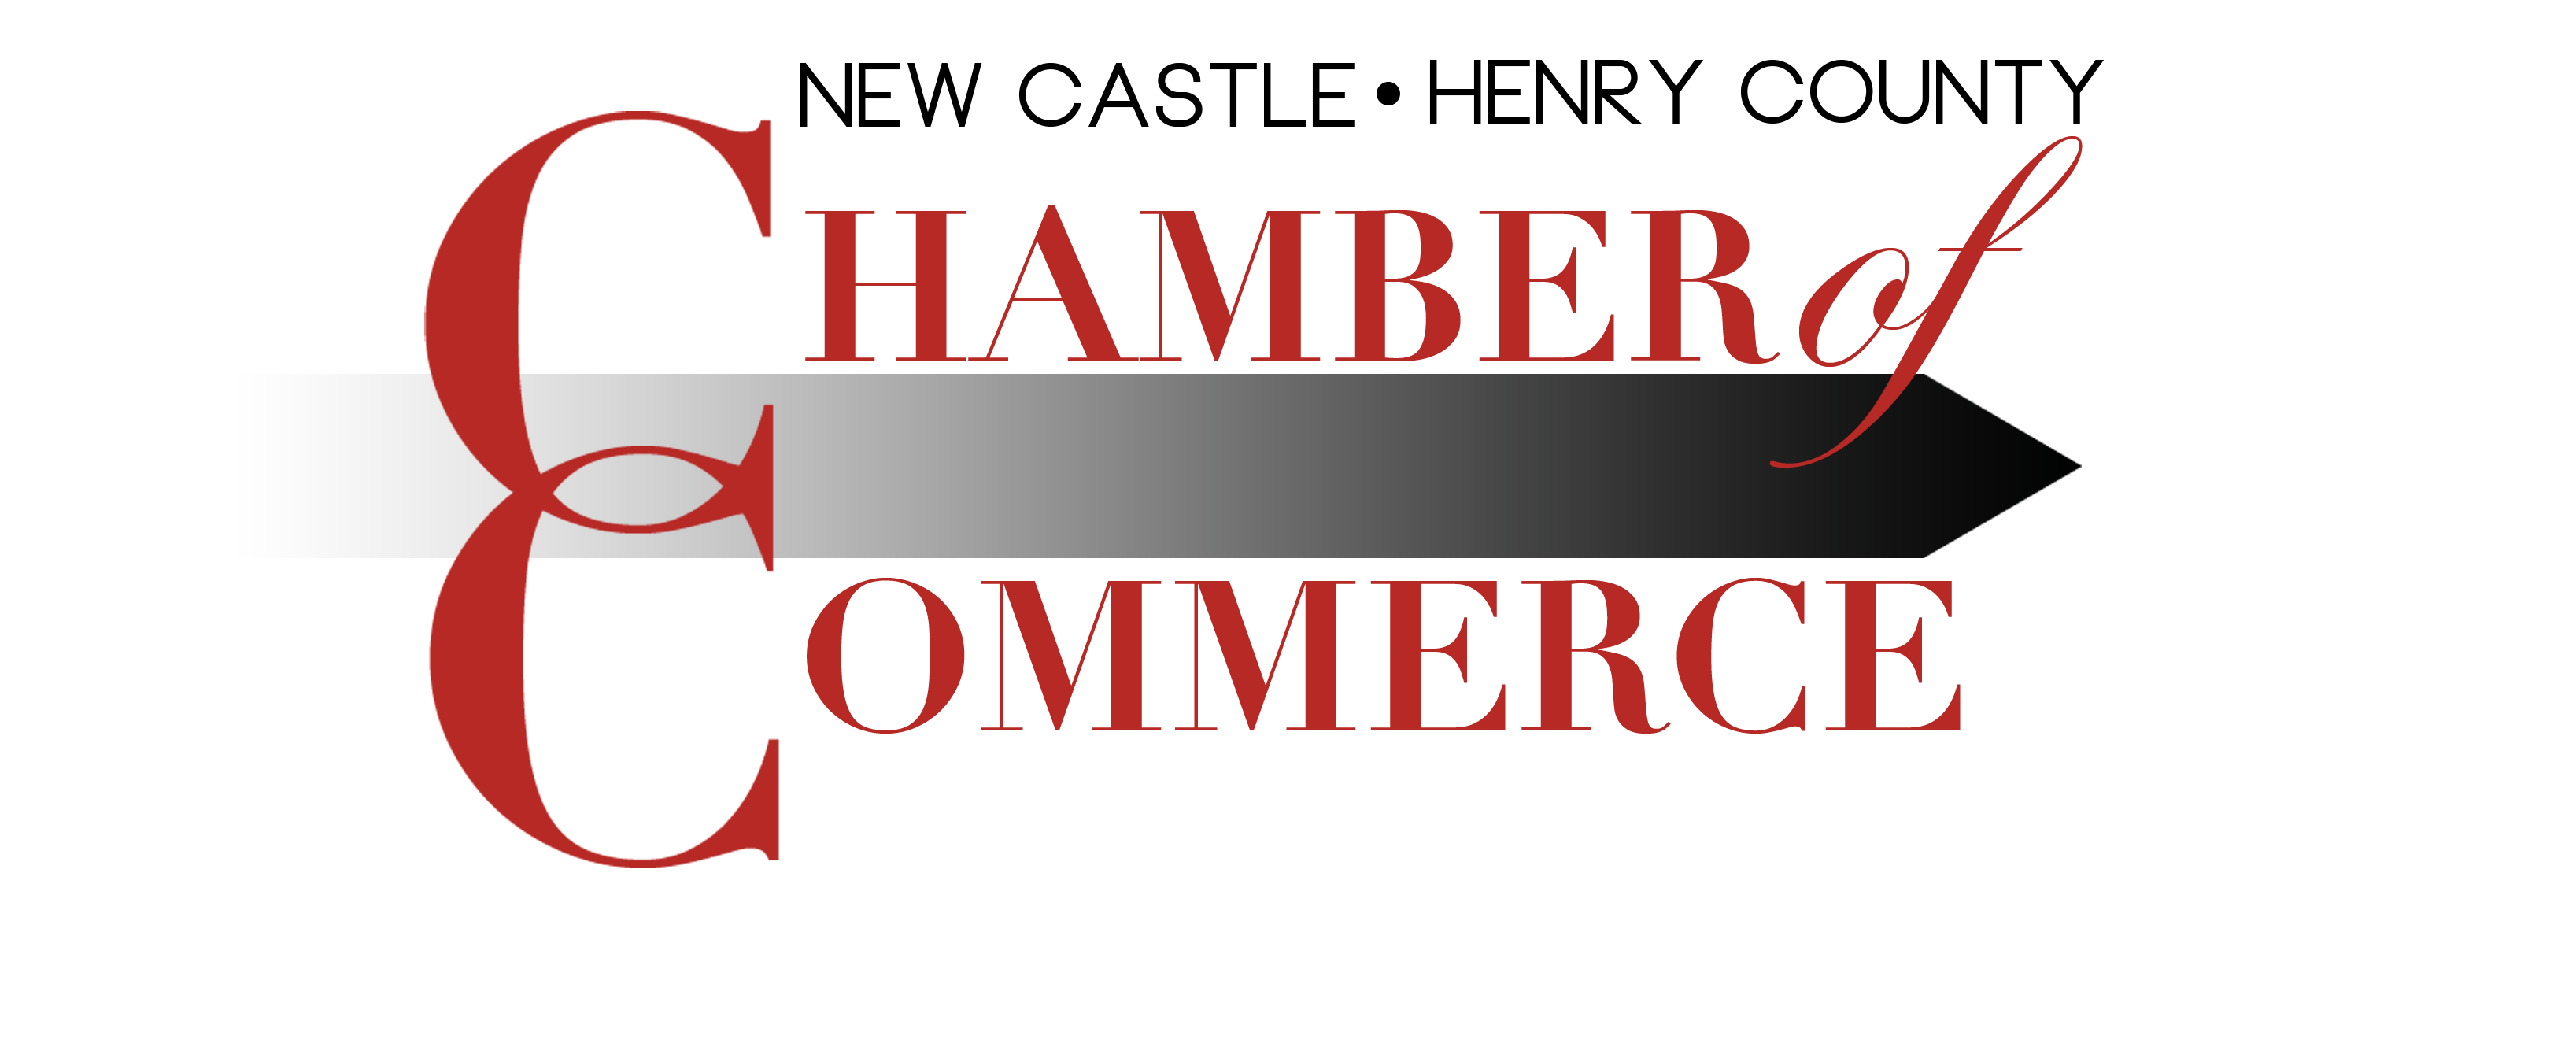 chamber-logo-png.png